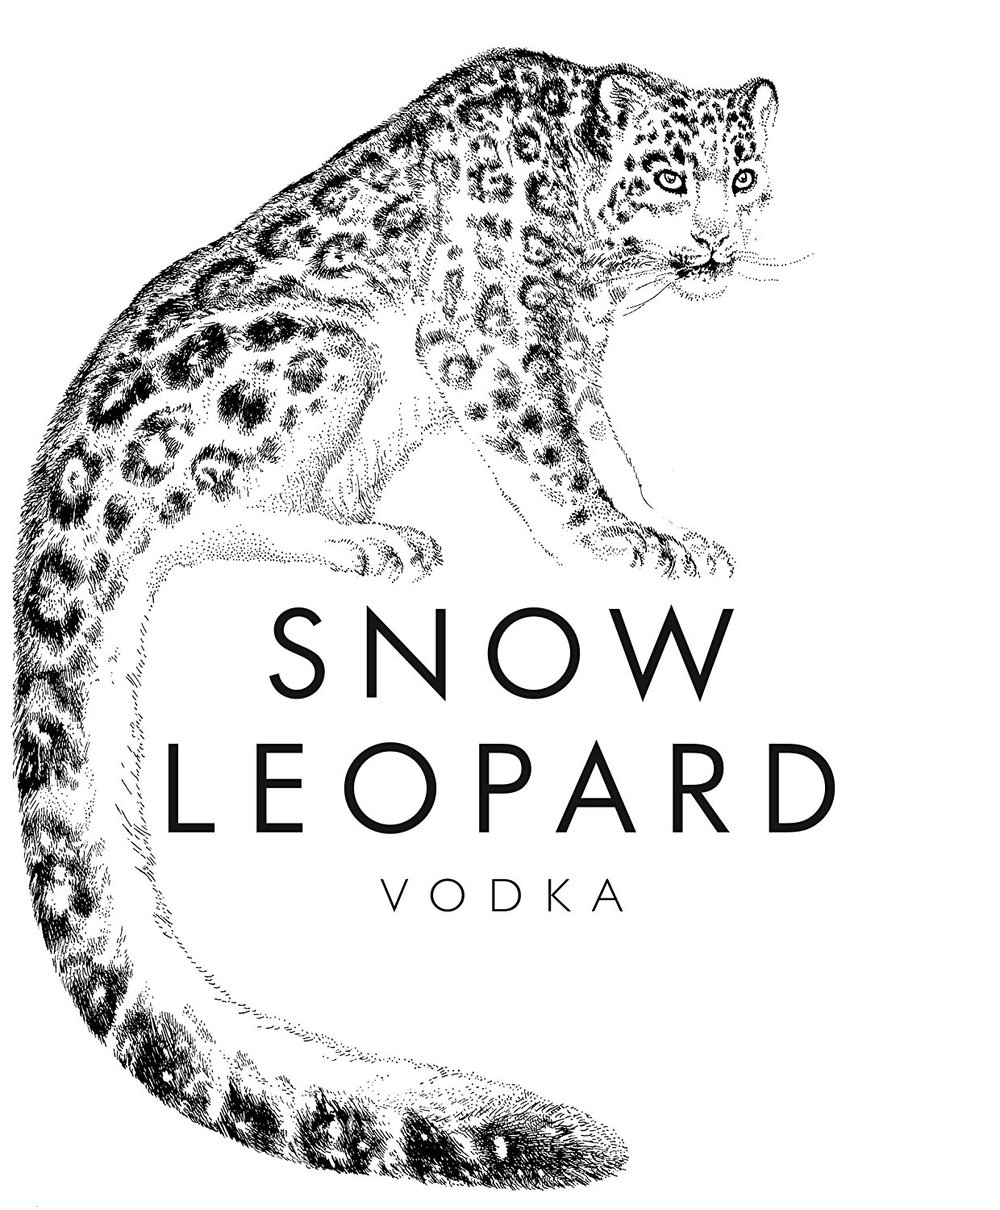 Snow leopard vodka.jpg